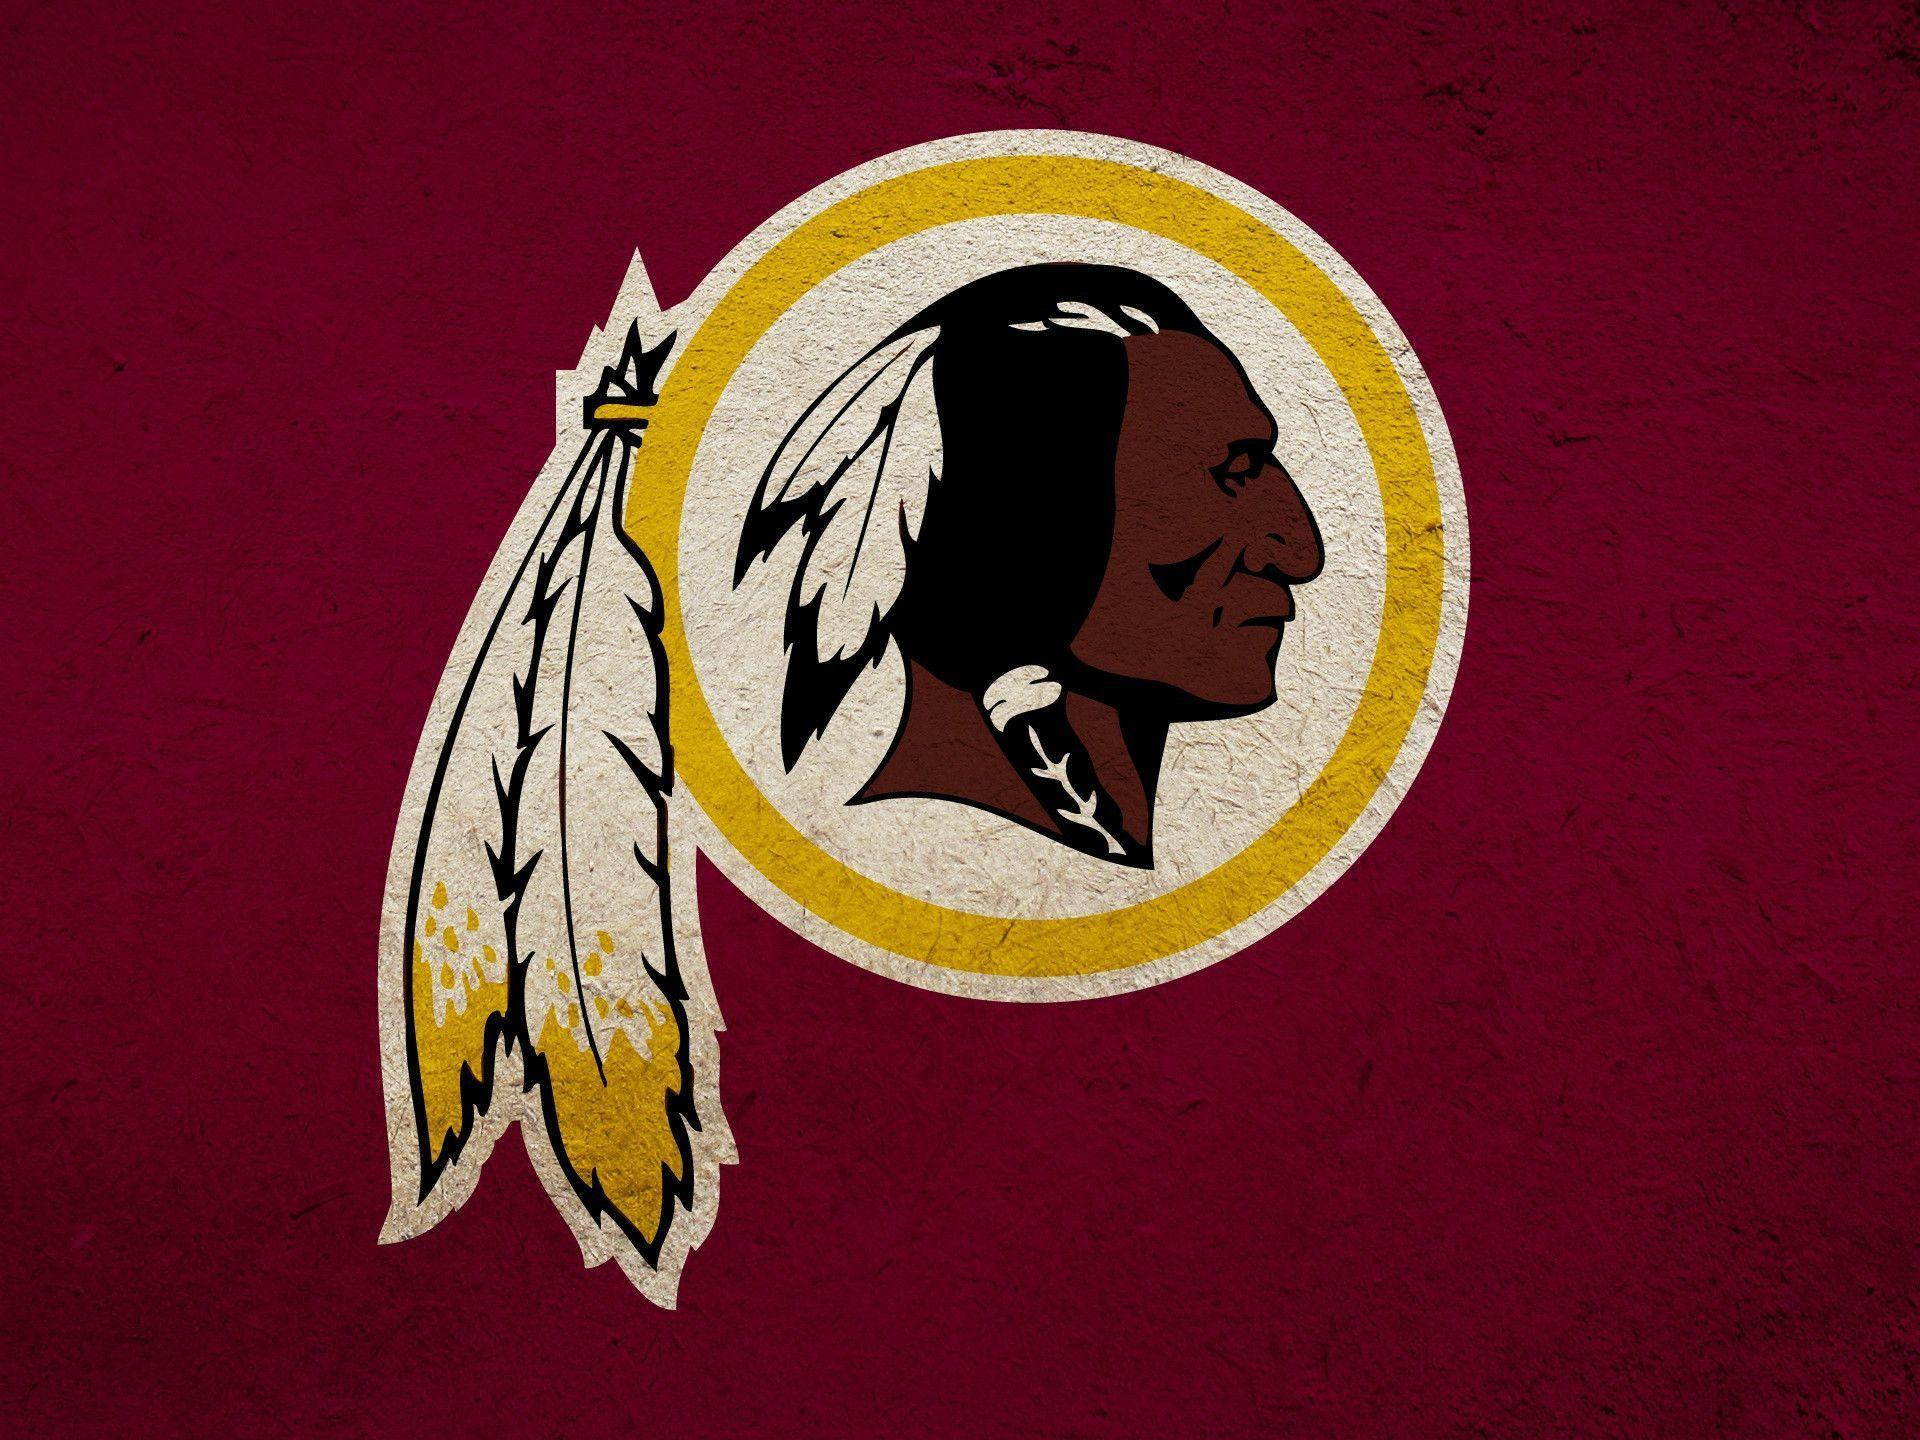 washington redskins wallpapers - wallpaper cave